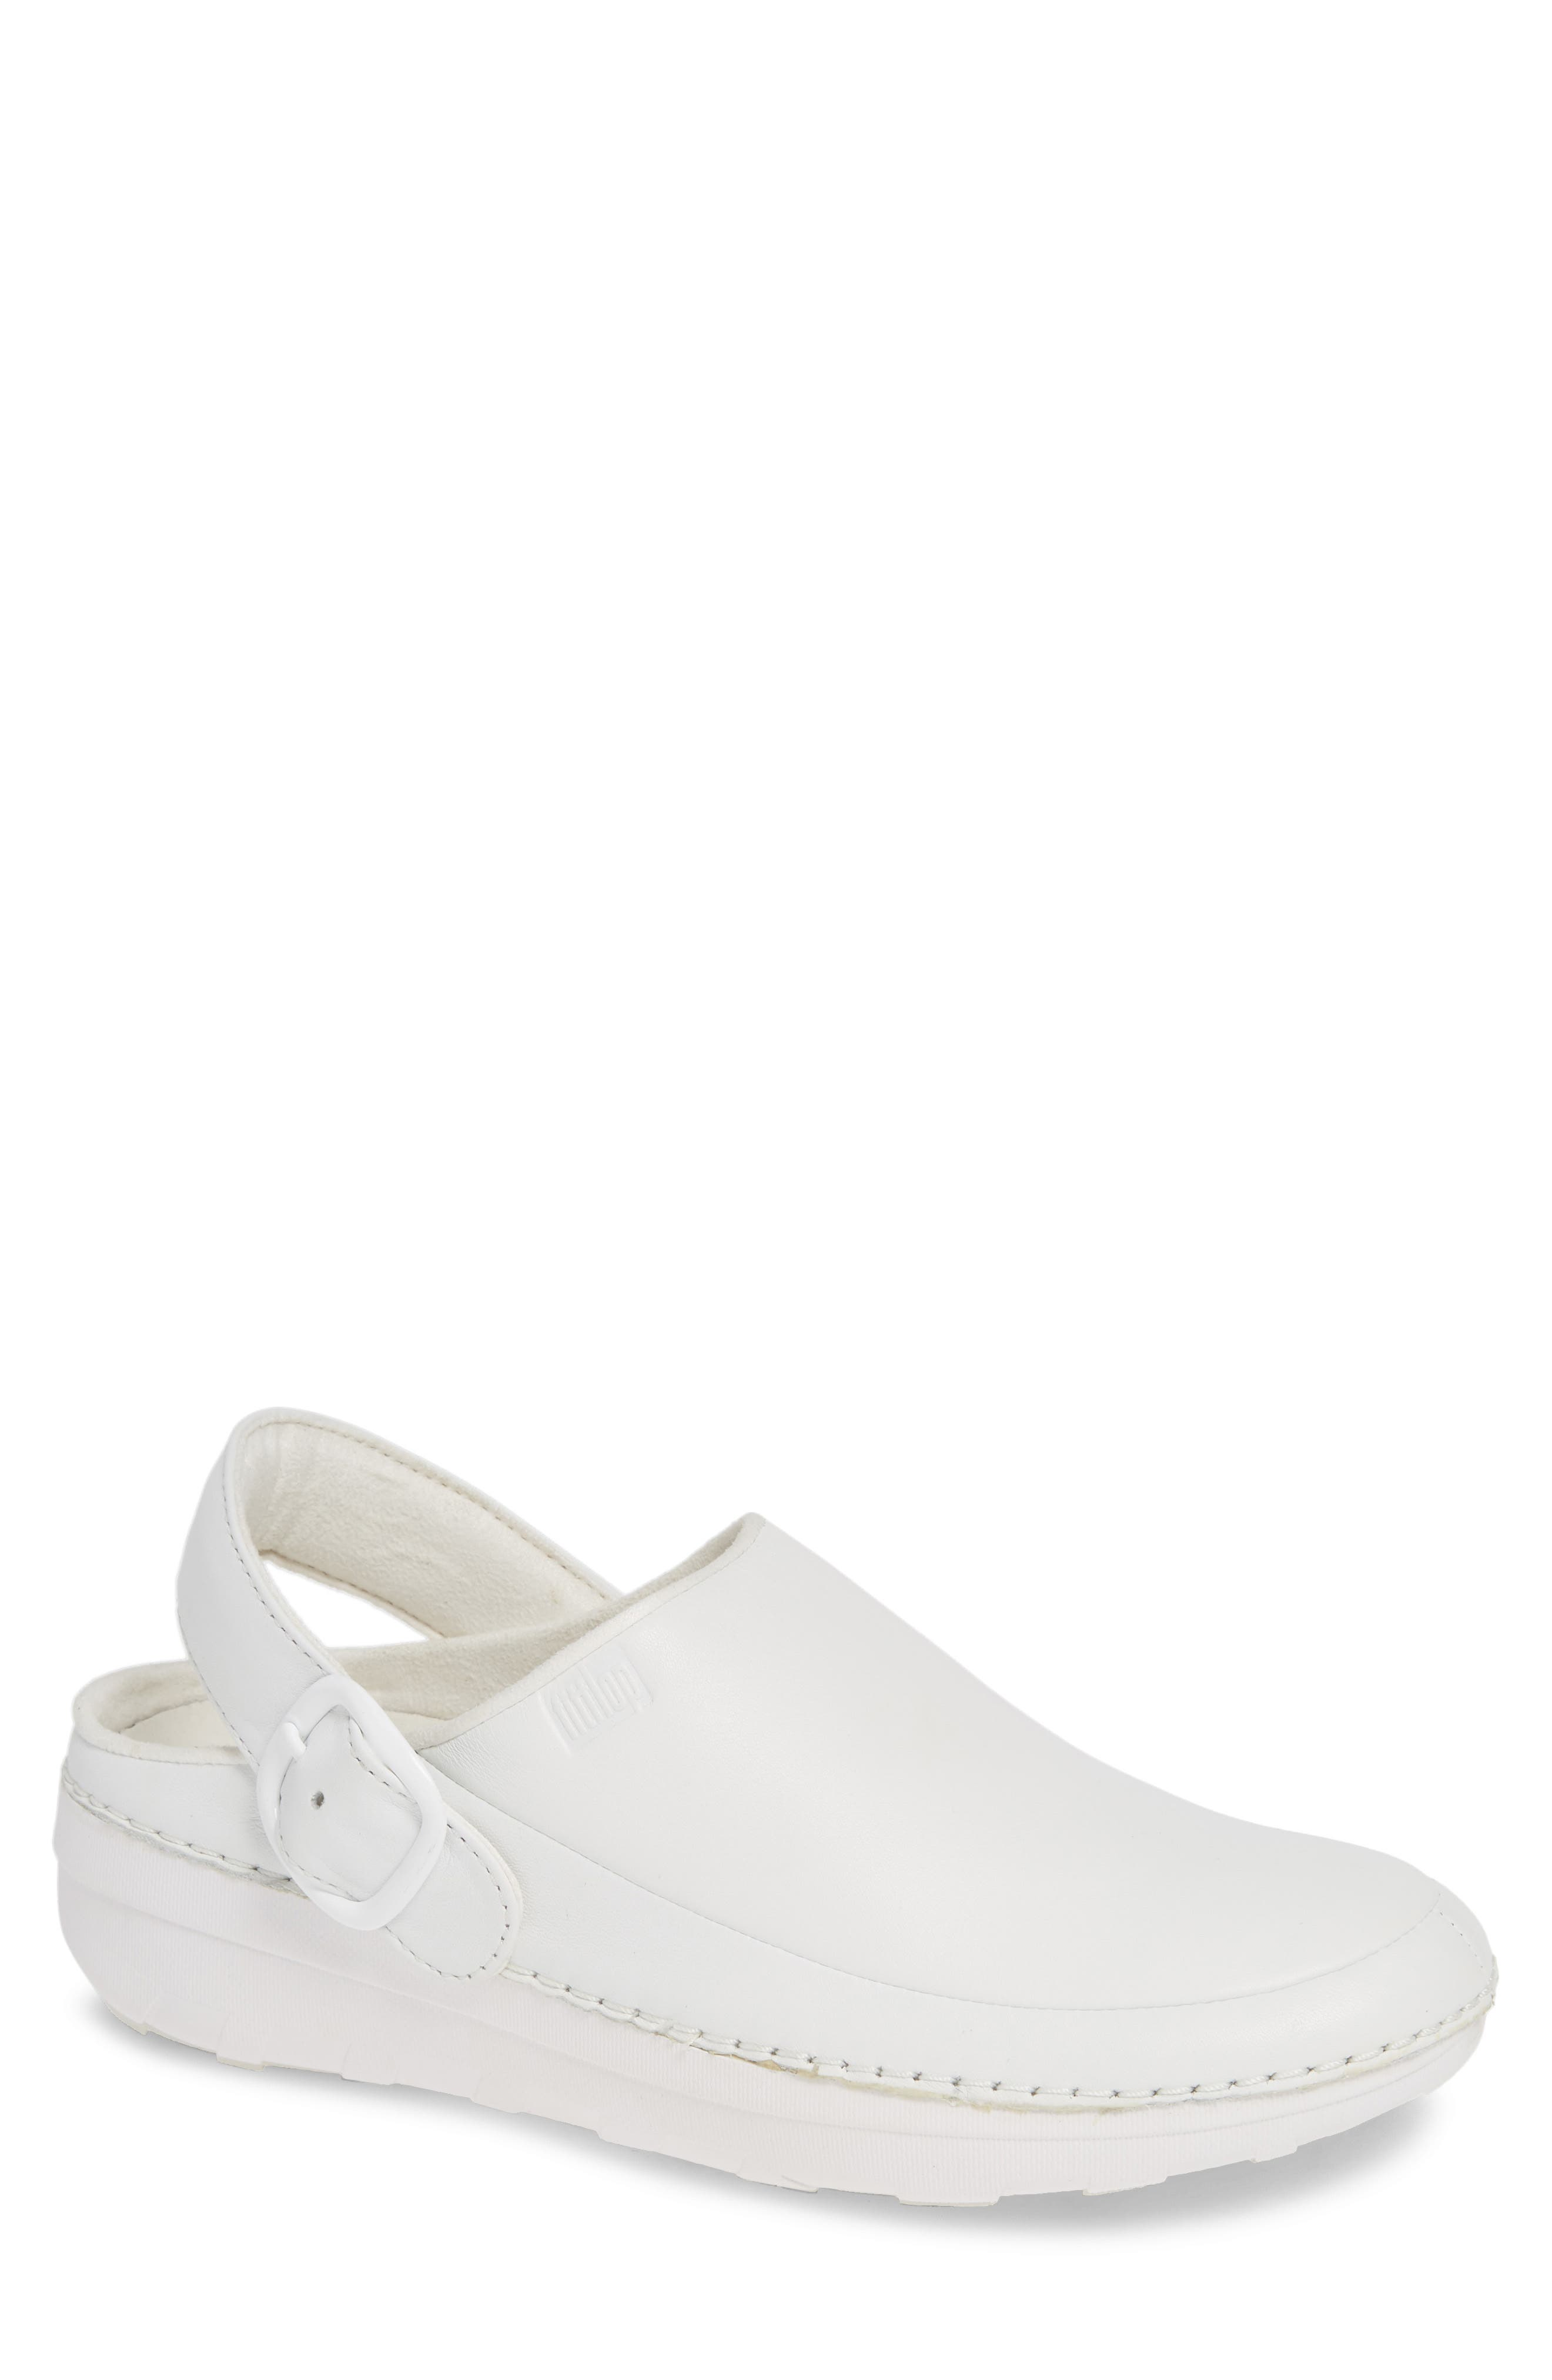 Gogh Pro Clog,                         Main,                         color, WHITE LEATHER